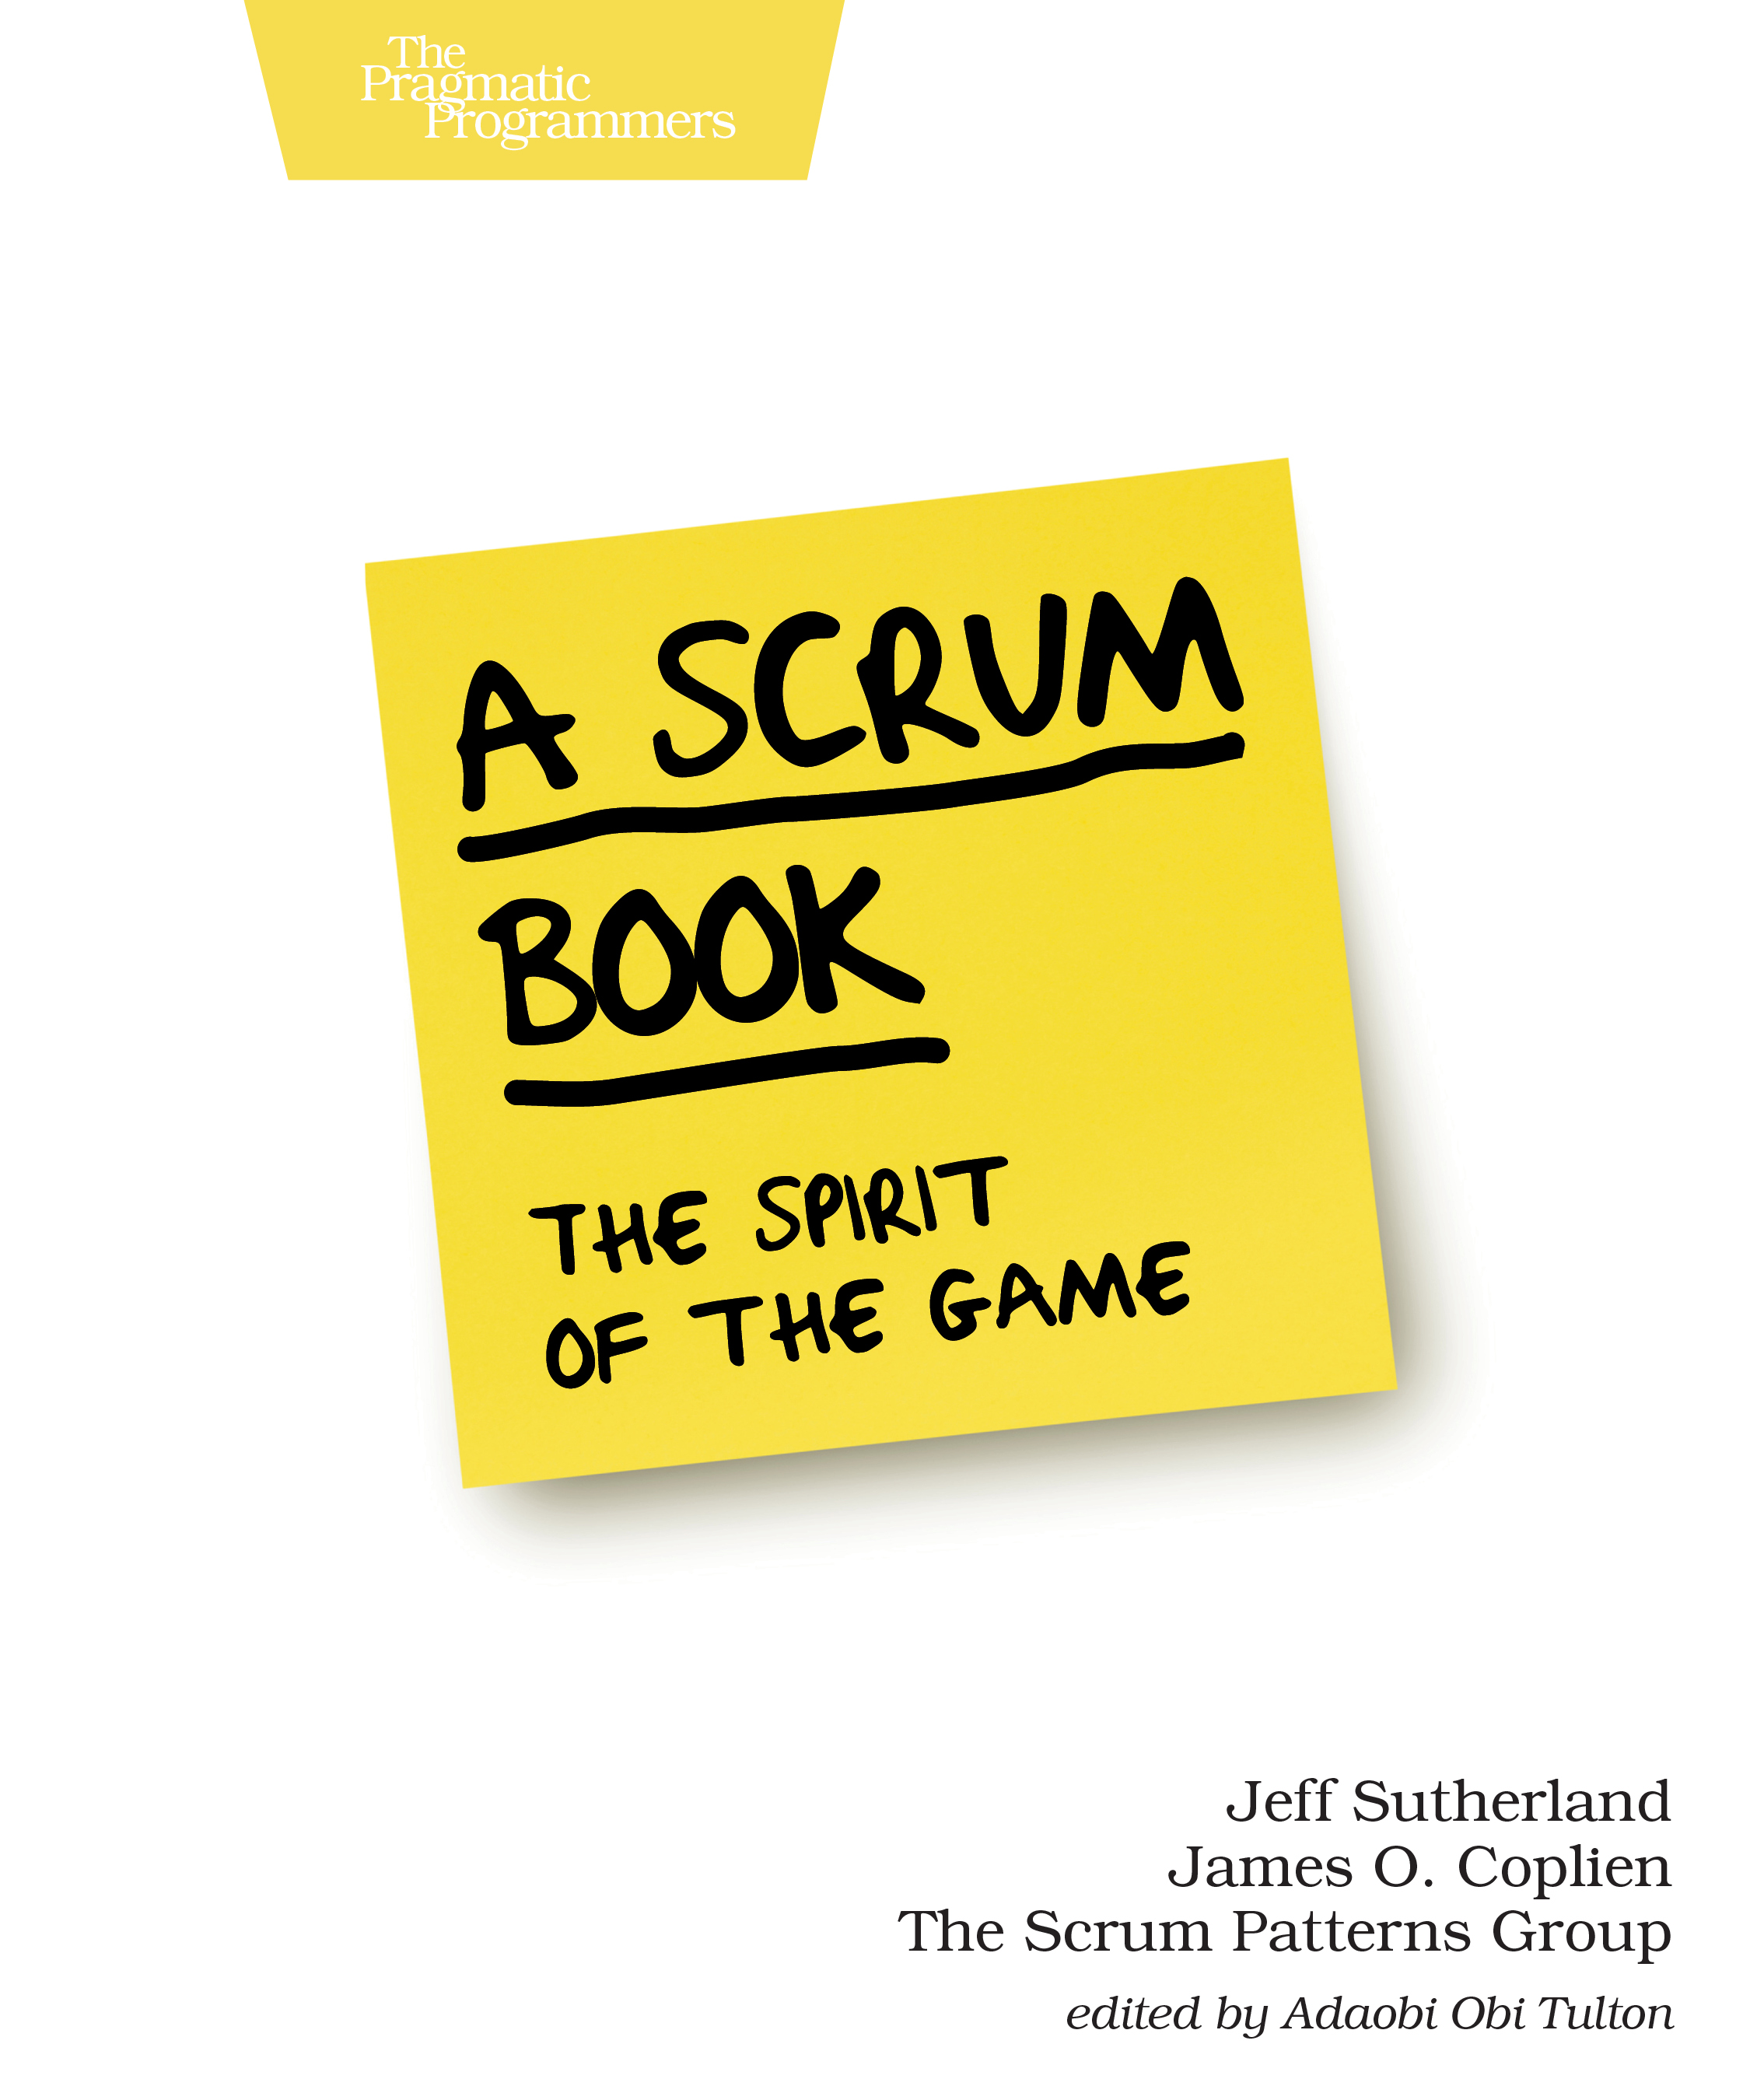 Q&A on A Scrum Book: The Spirit of the Game